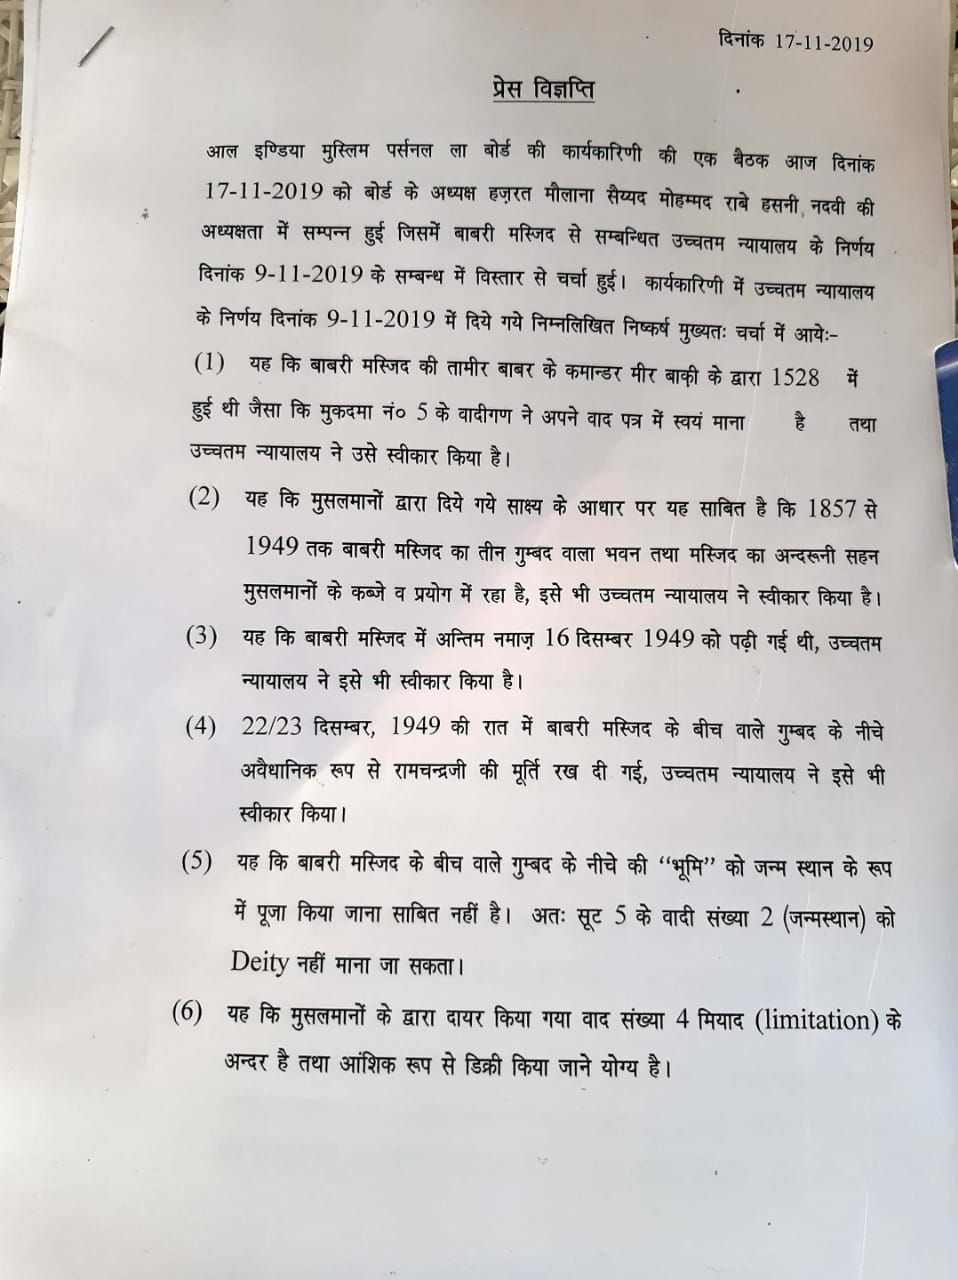 All India Muslim Personal Law Board to file review petition on Ayodhya verdict - Satya Hindi